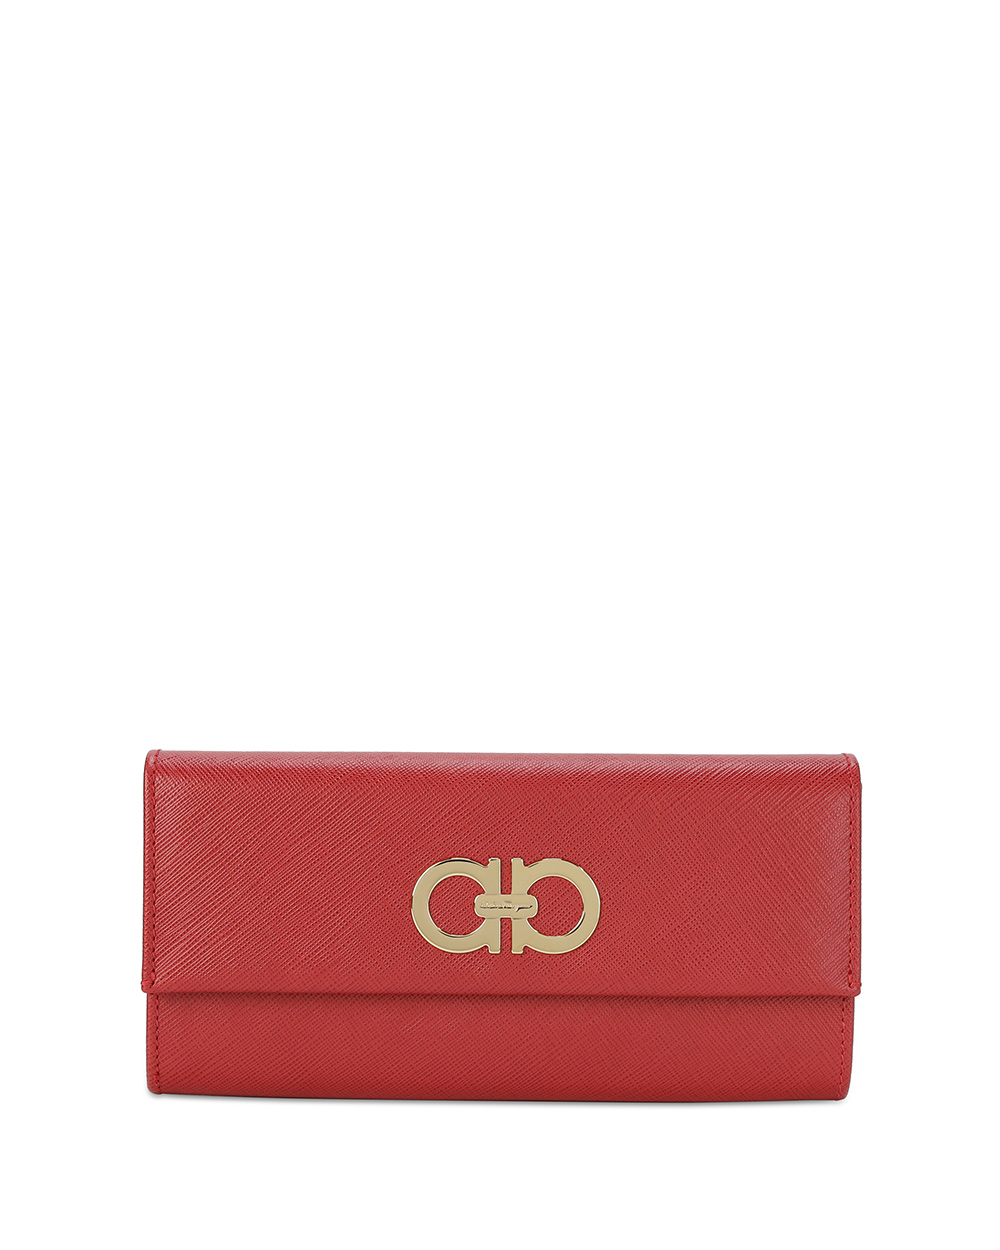 Logo Leather Long Wallet